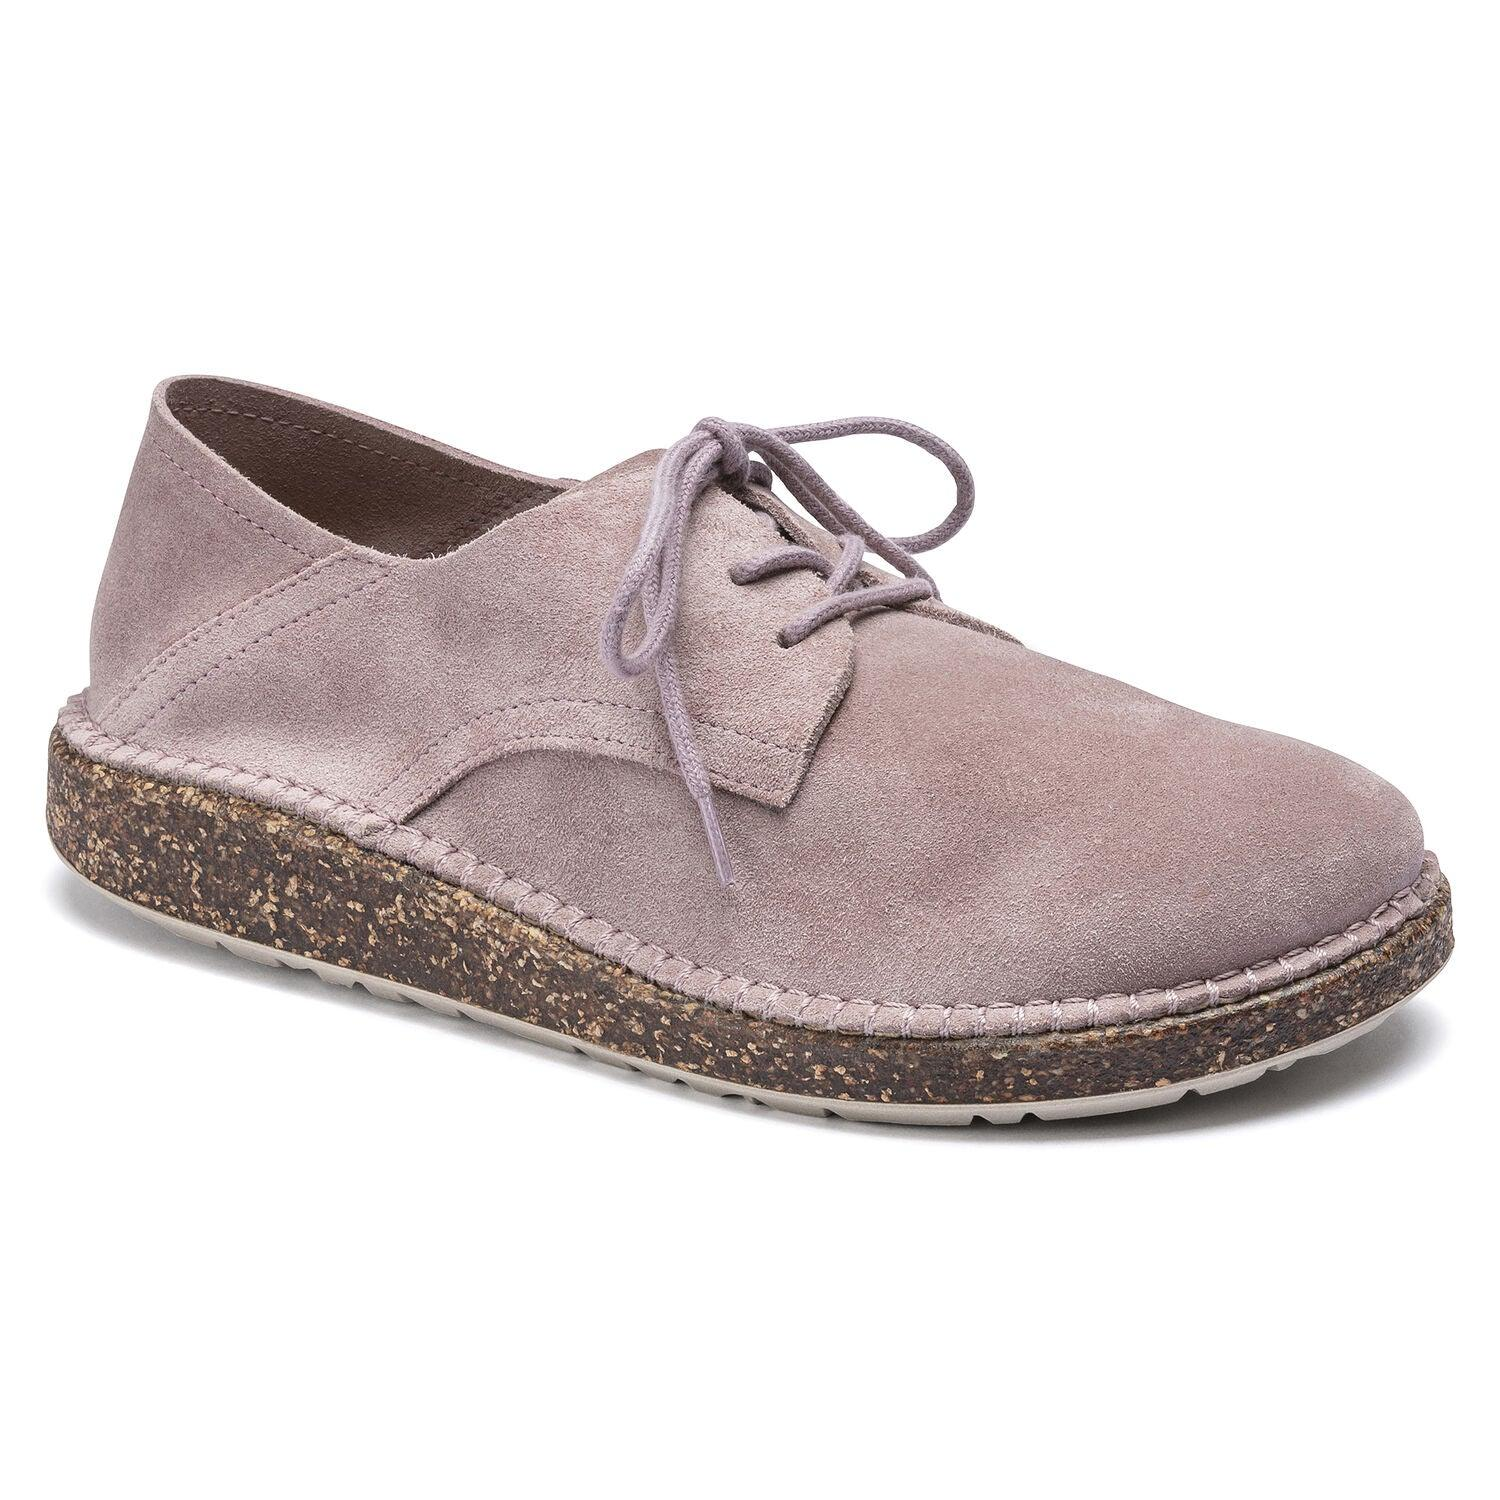 Birkenstock Women's Gary Lace-Up Shoe - Lavender Suede